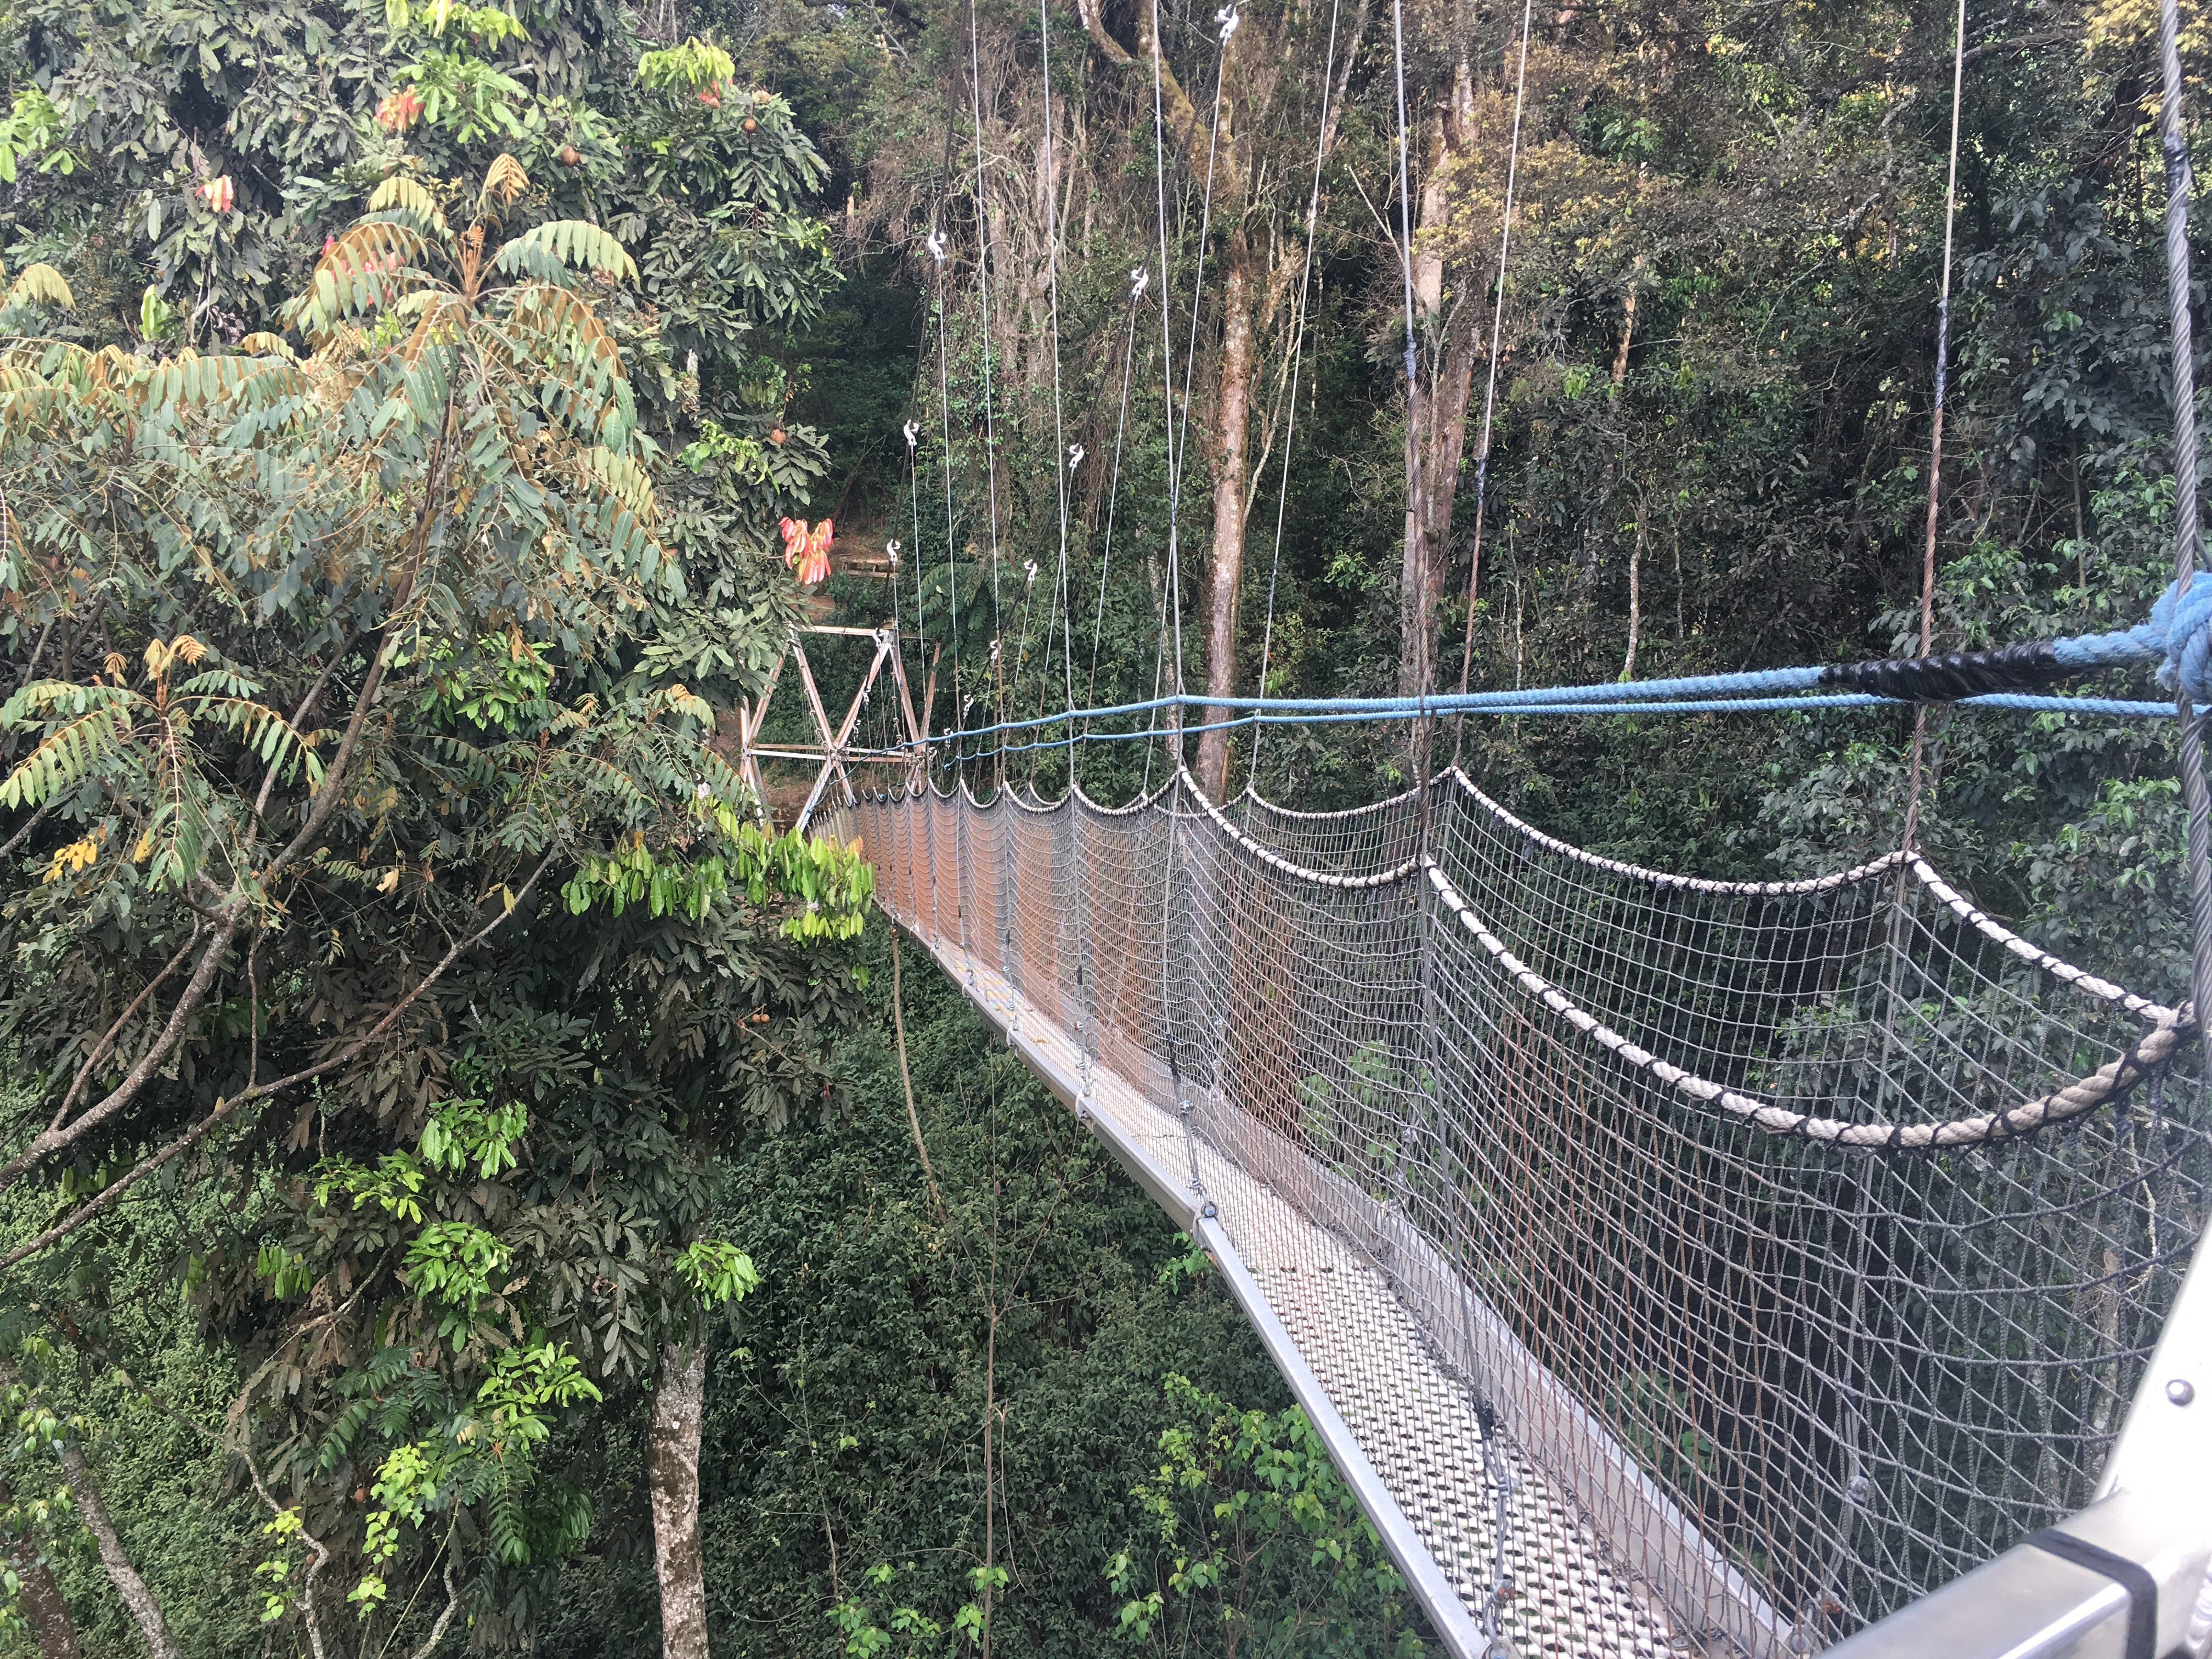 Finally we arrived at a series of three canopies one 45 meter canopy one 90 meter canopy and one 25 meter canopy all with views of Nyungwe Forest ... & Birds Eye View of Nyungwe Forest | The Wanderlust Effect